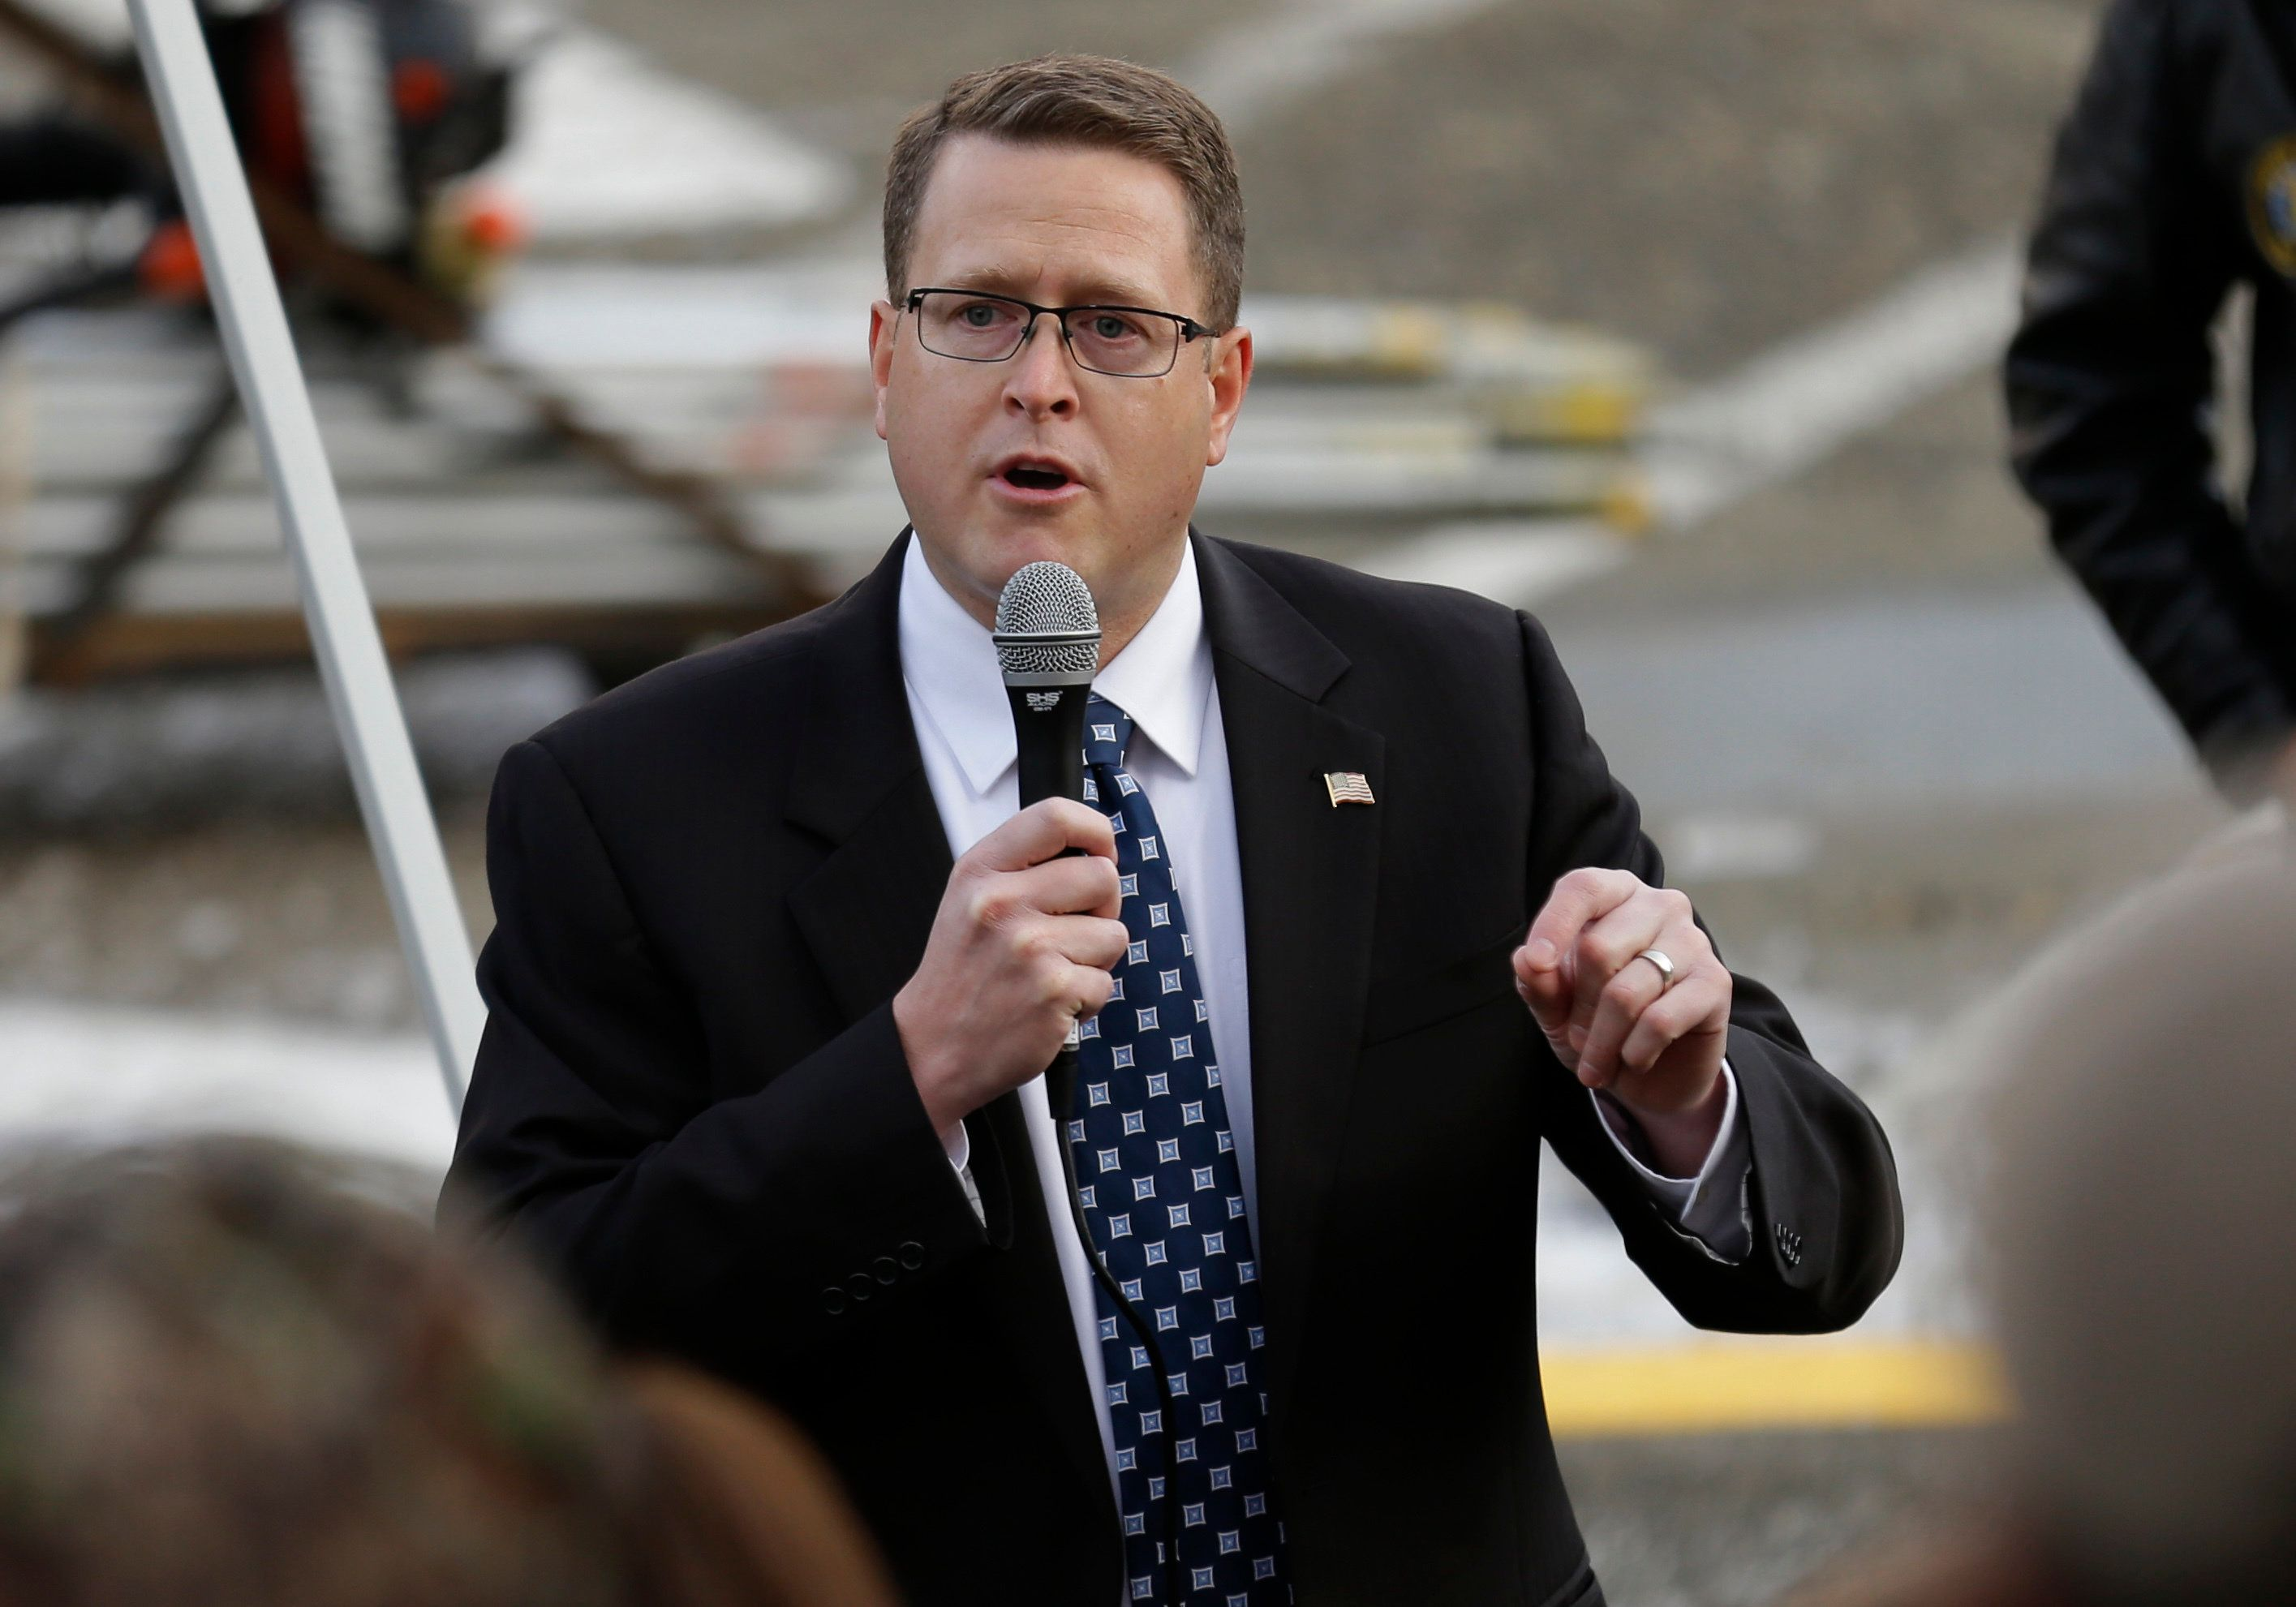 """FILE - In this Jan. 13, 2017 file photo Rep. Matt Shea, R-Spokane, speaks at a gun-rights rally, at the Capitol in Olympia, Wash.Shea, is facing intense criticism for distributing a document describing how a """"Holy Army"""" should kill people who flout """"biblical law,"""" with some campaign donors asking for their contributions back. (AP Photo/Ted S. Warren,File)"""